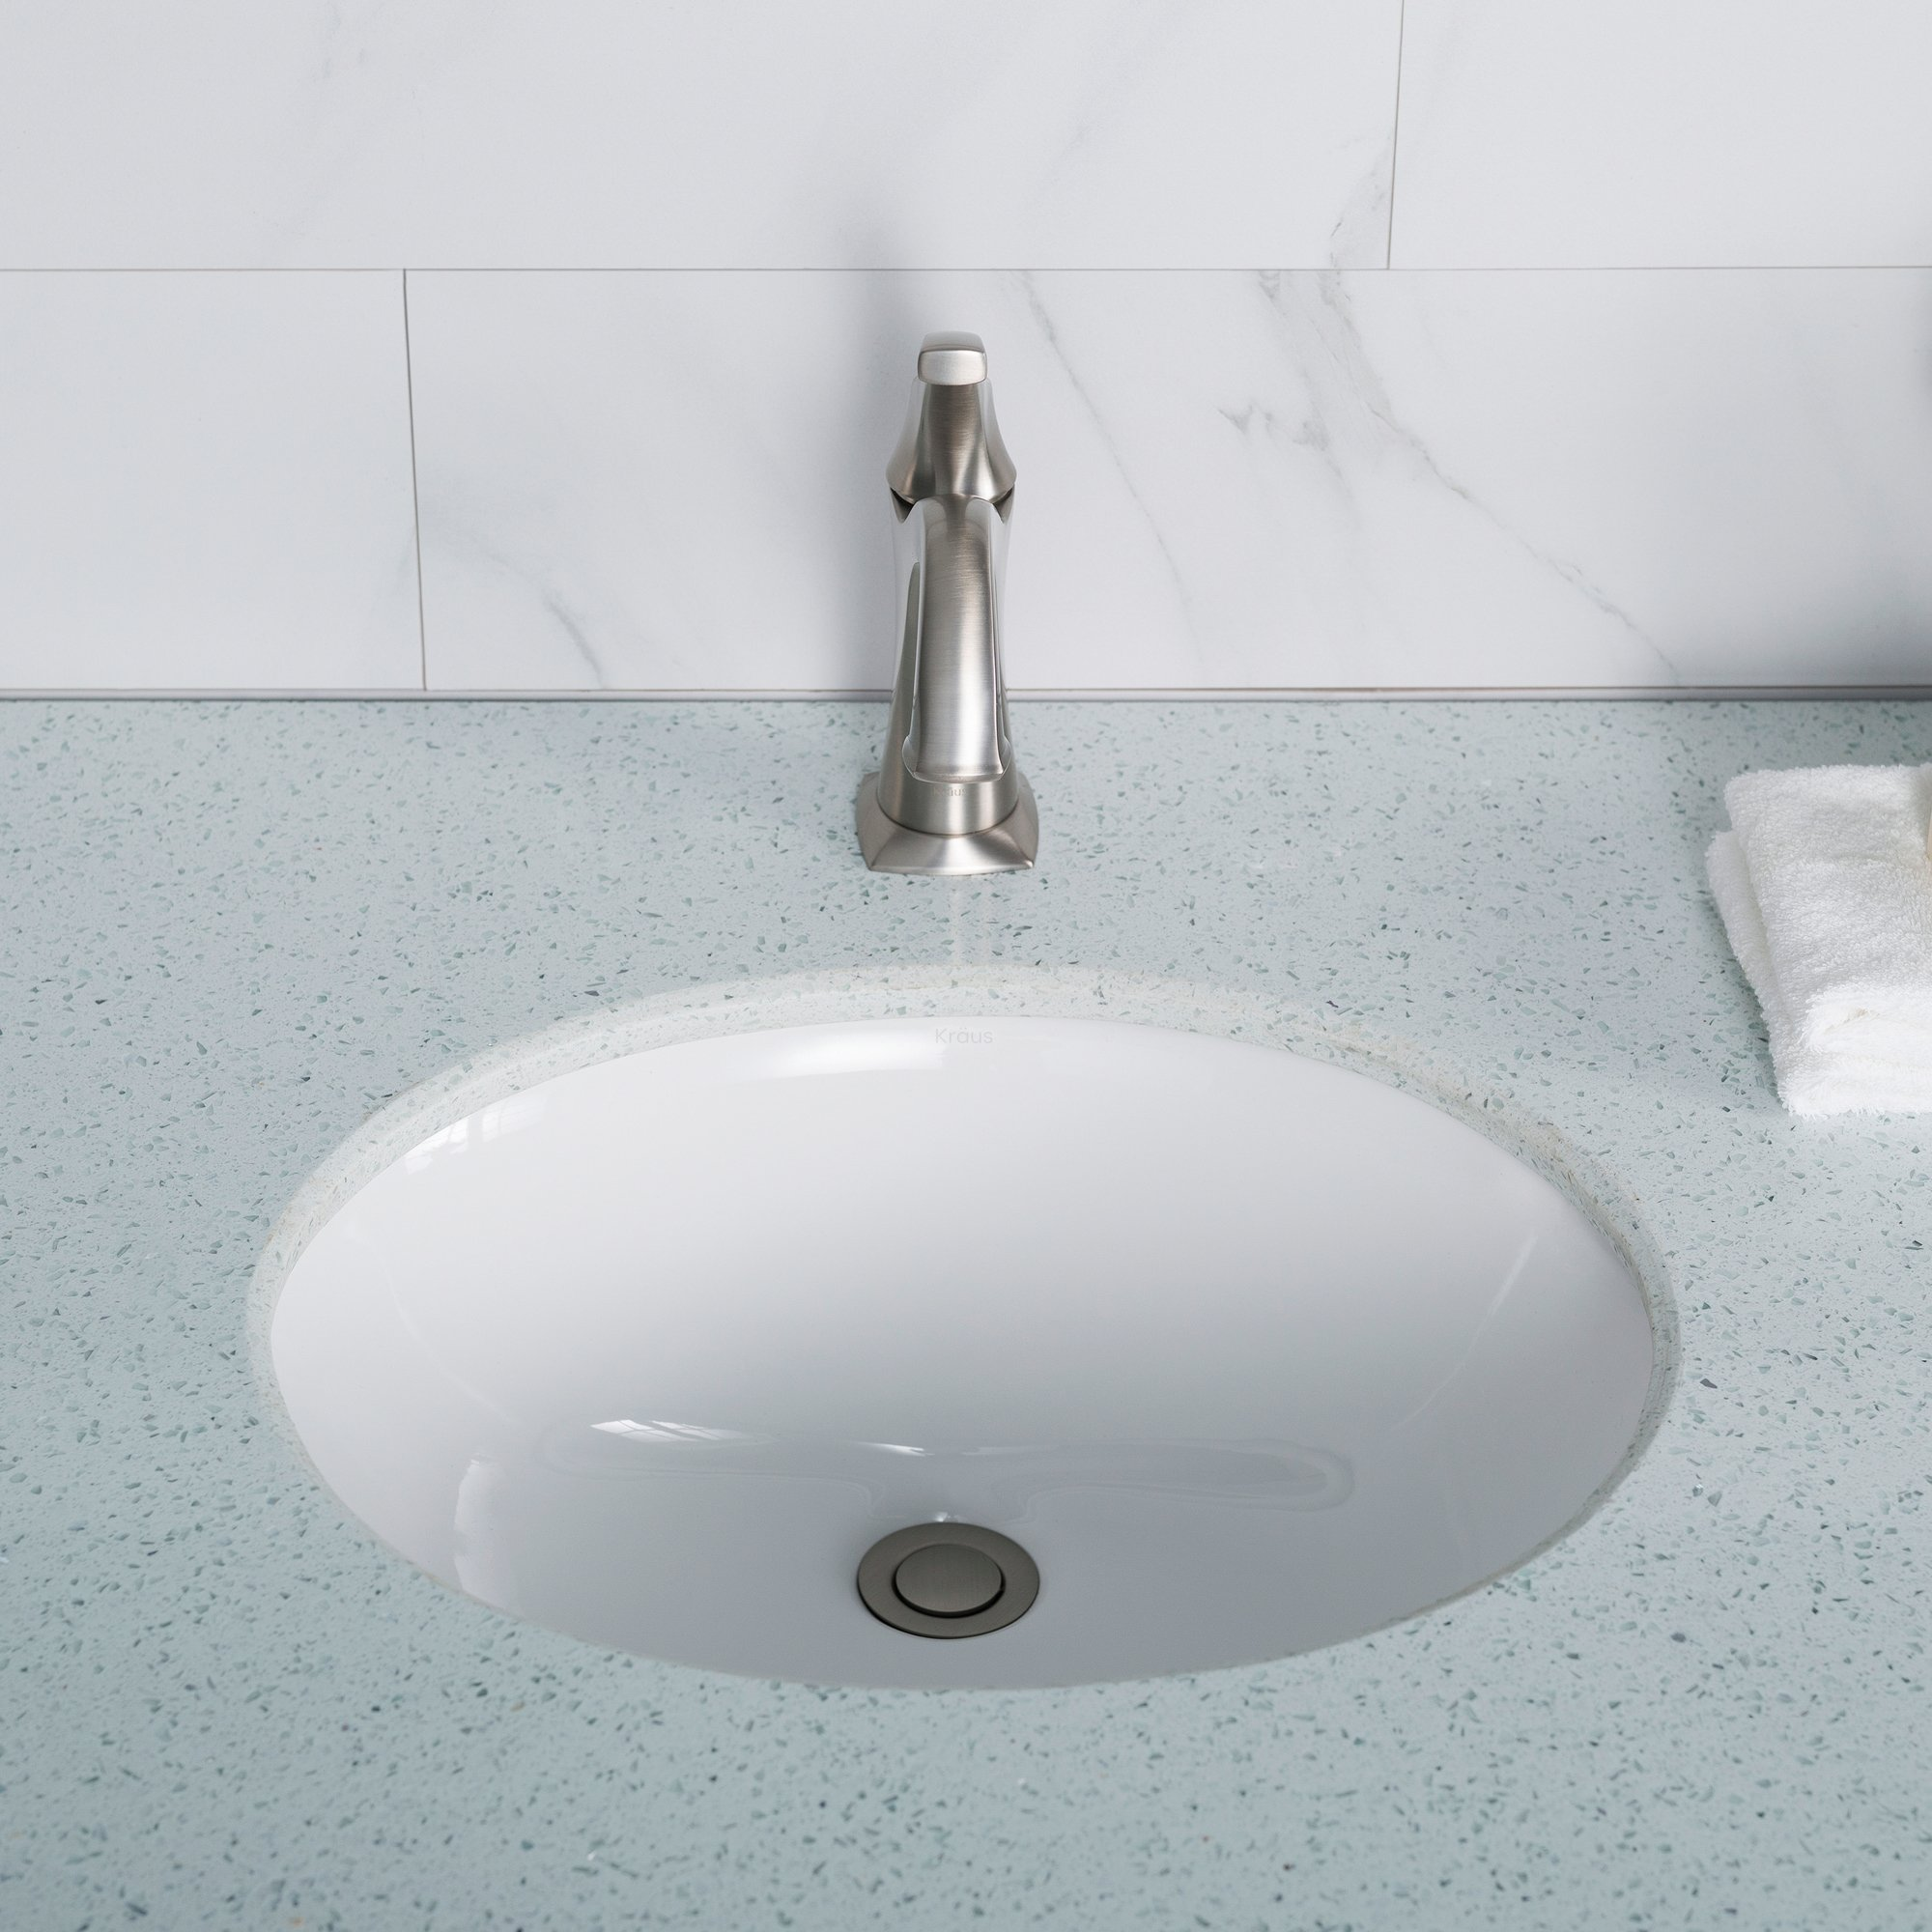 KRAUS Elavo 17 Inch Oval Undermount Porcelain Ceramic Bathroom Sink in White with Overflow, KCU-211 by Kraus (Image #3)